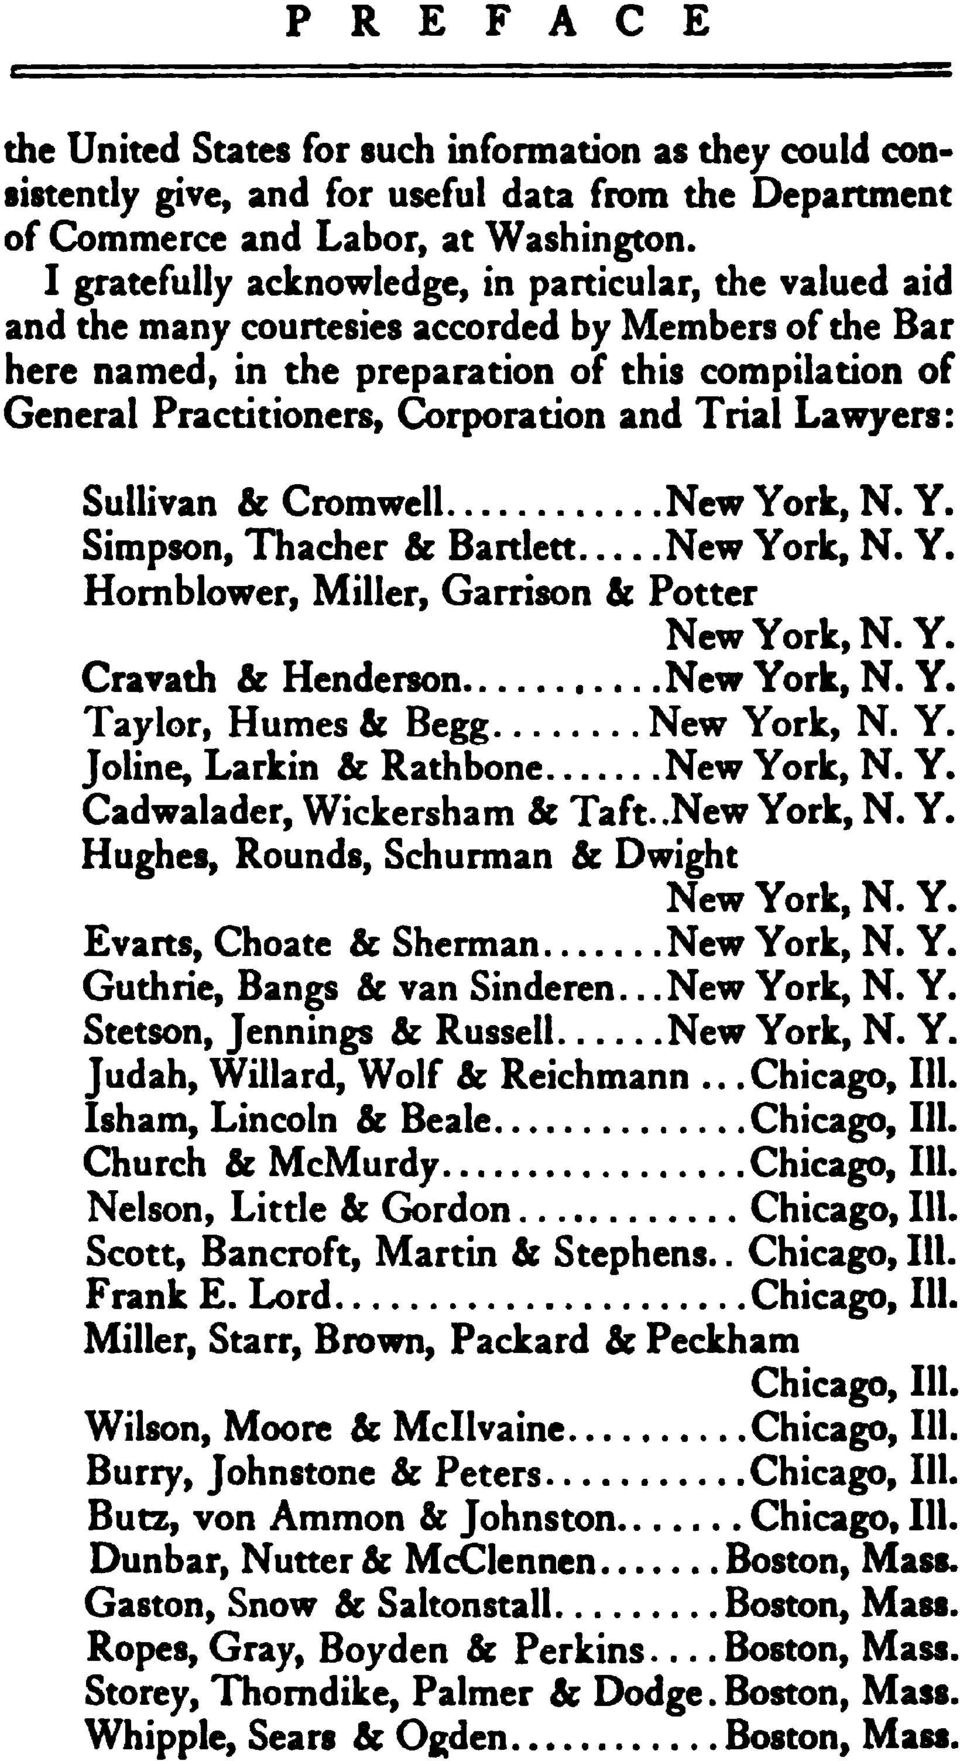 "and Trial Lawyers: Sullivan "" Cromwell New York, N. Y. Simpson, Thacher "" Bartlett New York, N. Y. Homblower, Miller, Garrison "" Potter New York, N.Y. Cravath "" Henderson New York, N. Y. Taylor, Humes k Begg New York, N."